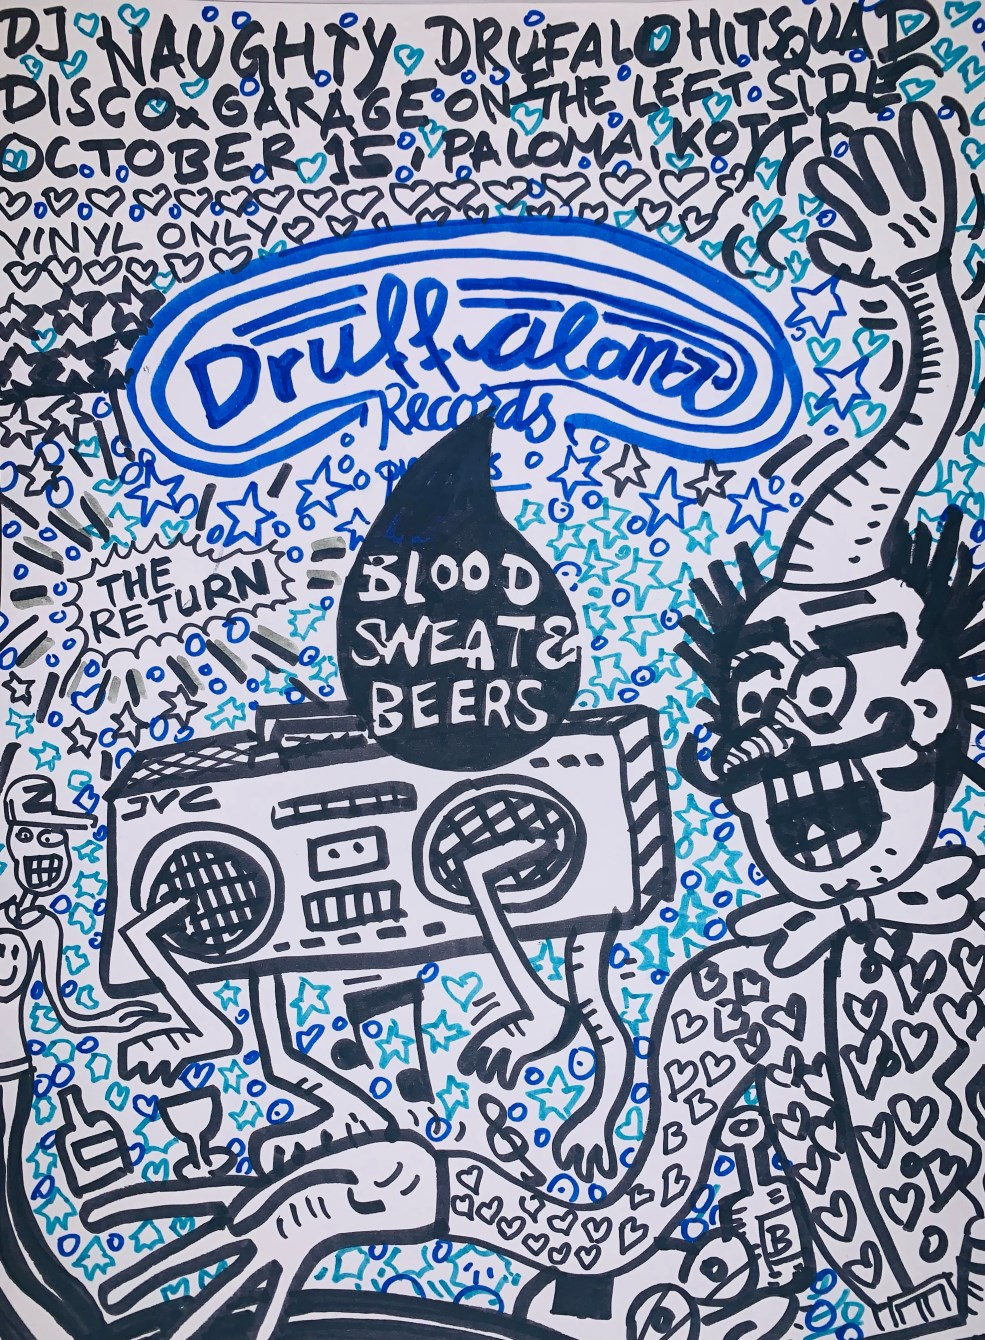 Druffaloma - Blood, Sweat & Beers - Flyer front